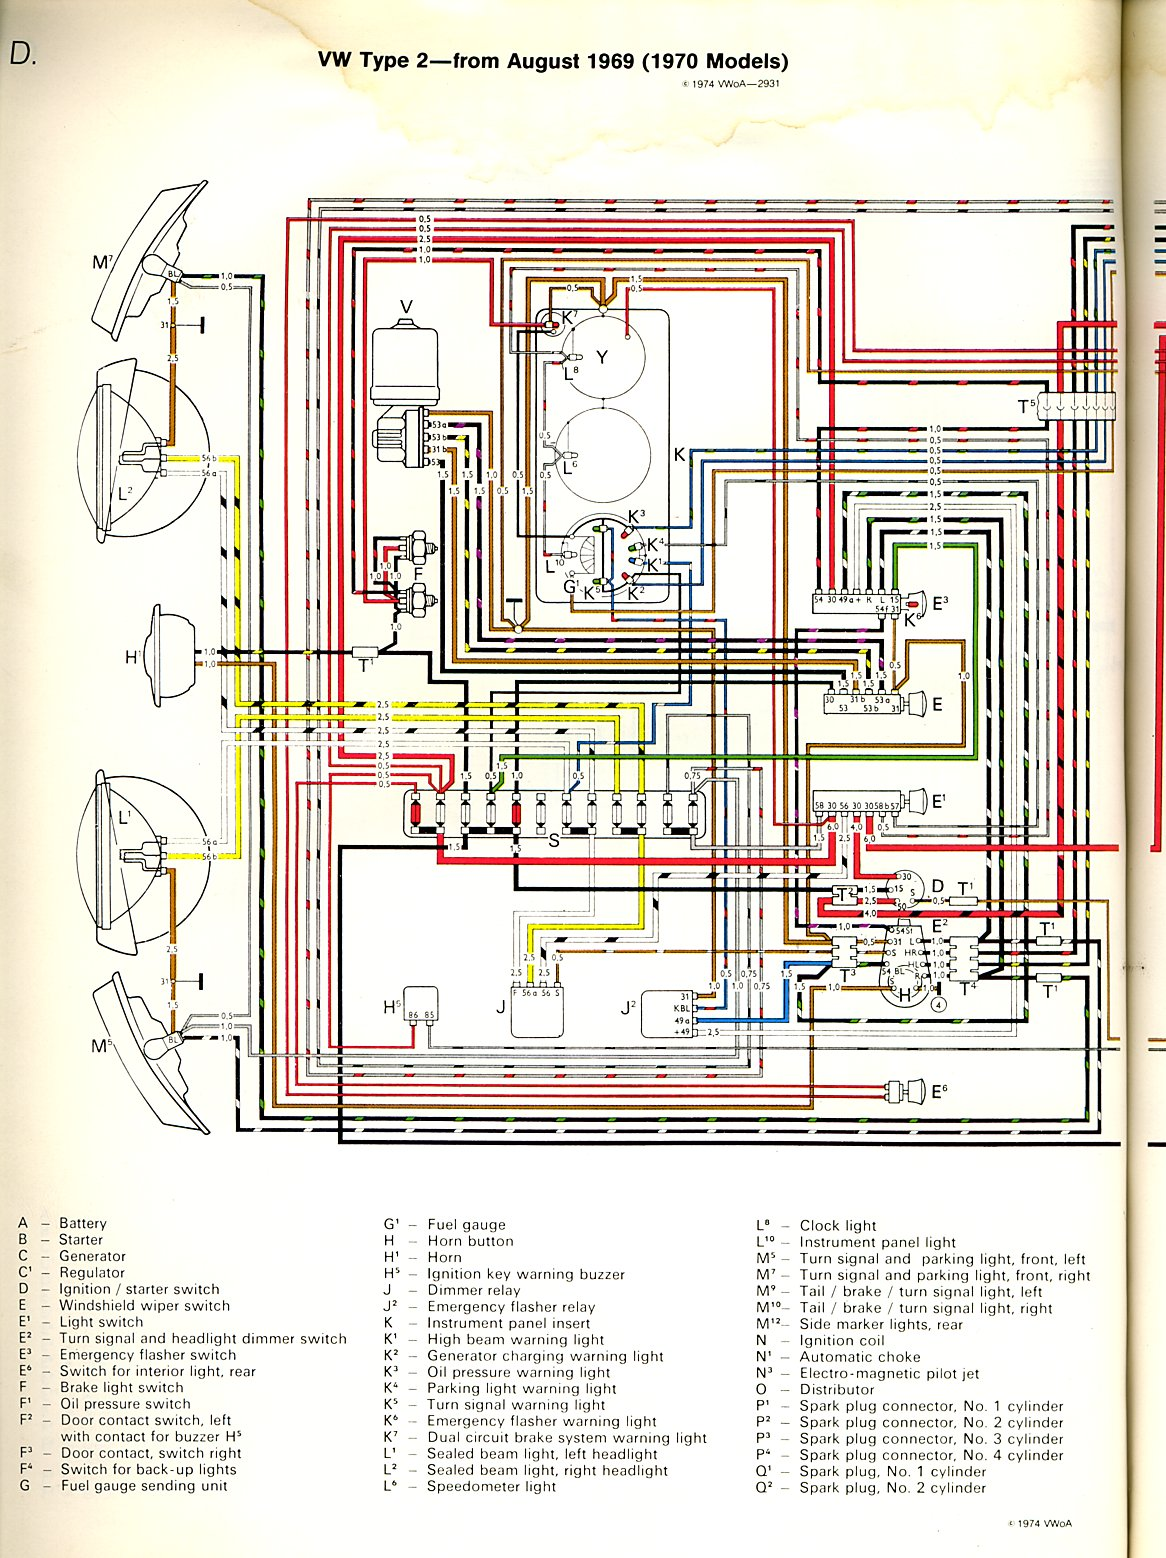 baybus_70a bus wiring diagram vw wiring harness diagram \u2022 wiring diagrams j 1971 vw bus wiring diagram at mifinder.co